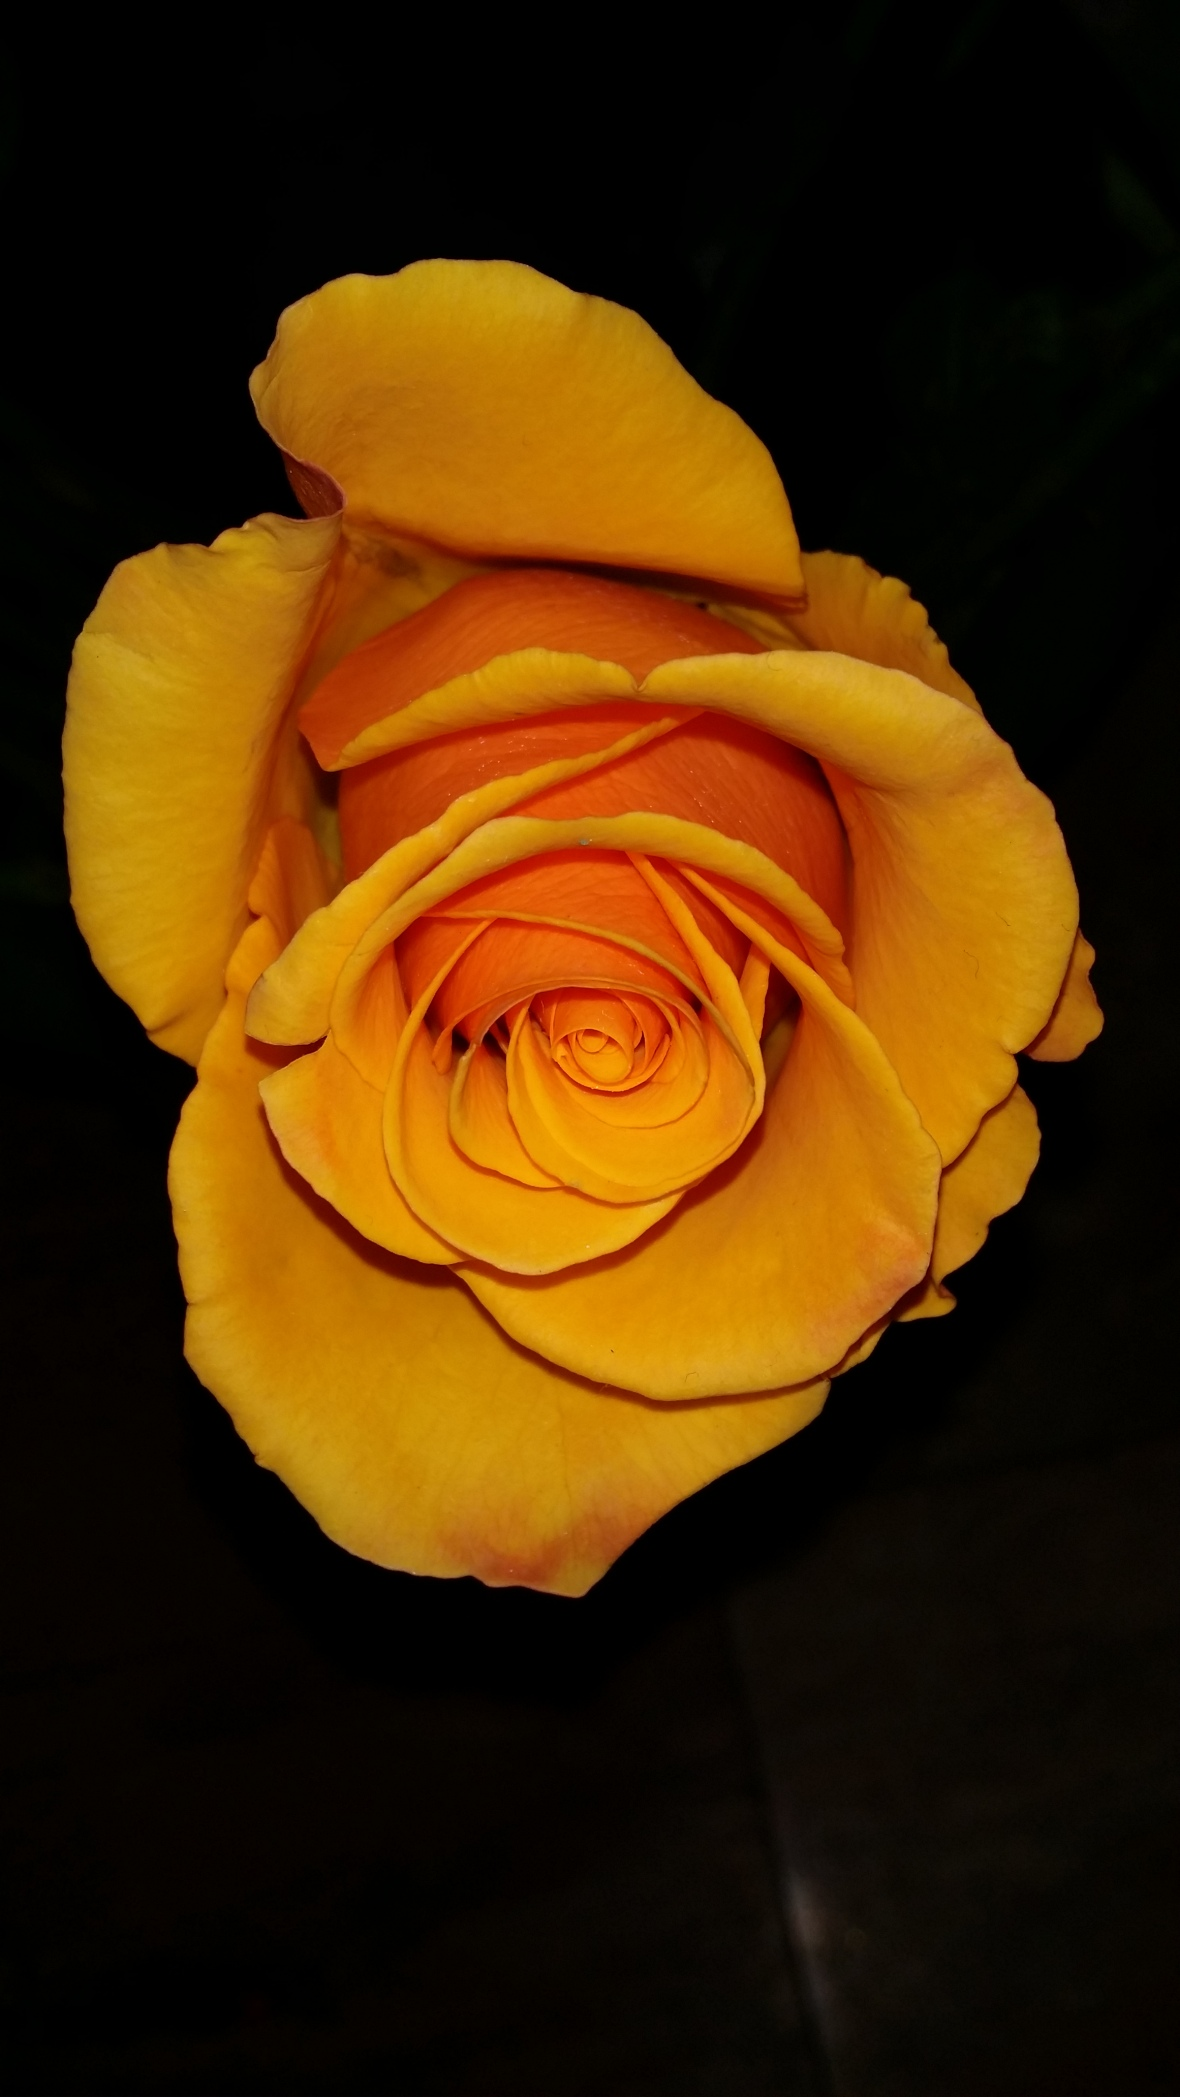 Floral Portrait Series: The Golden Yellow Rose ...